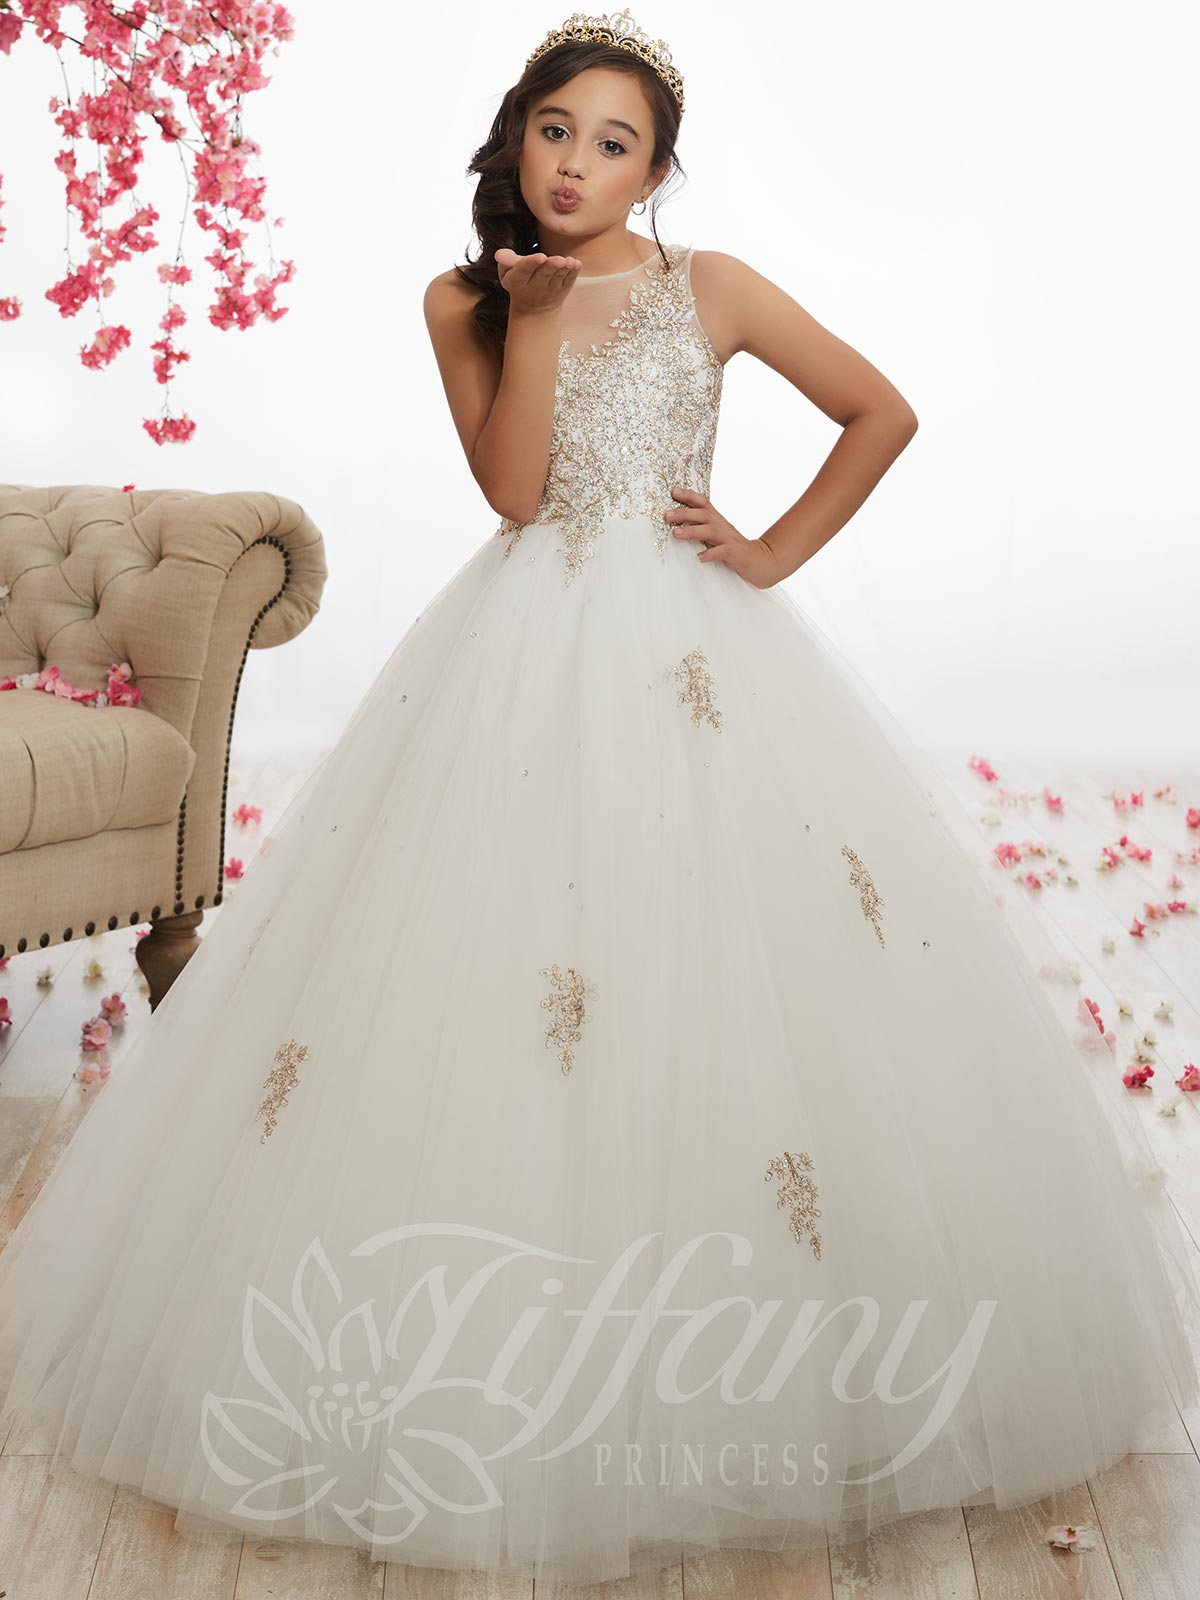 39cee0c994ad Beaded Tulle Ball Pageant Gown by Tiffany Princess 13523